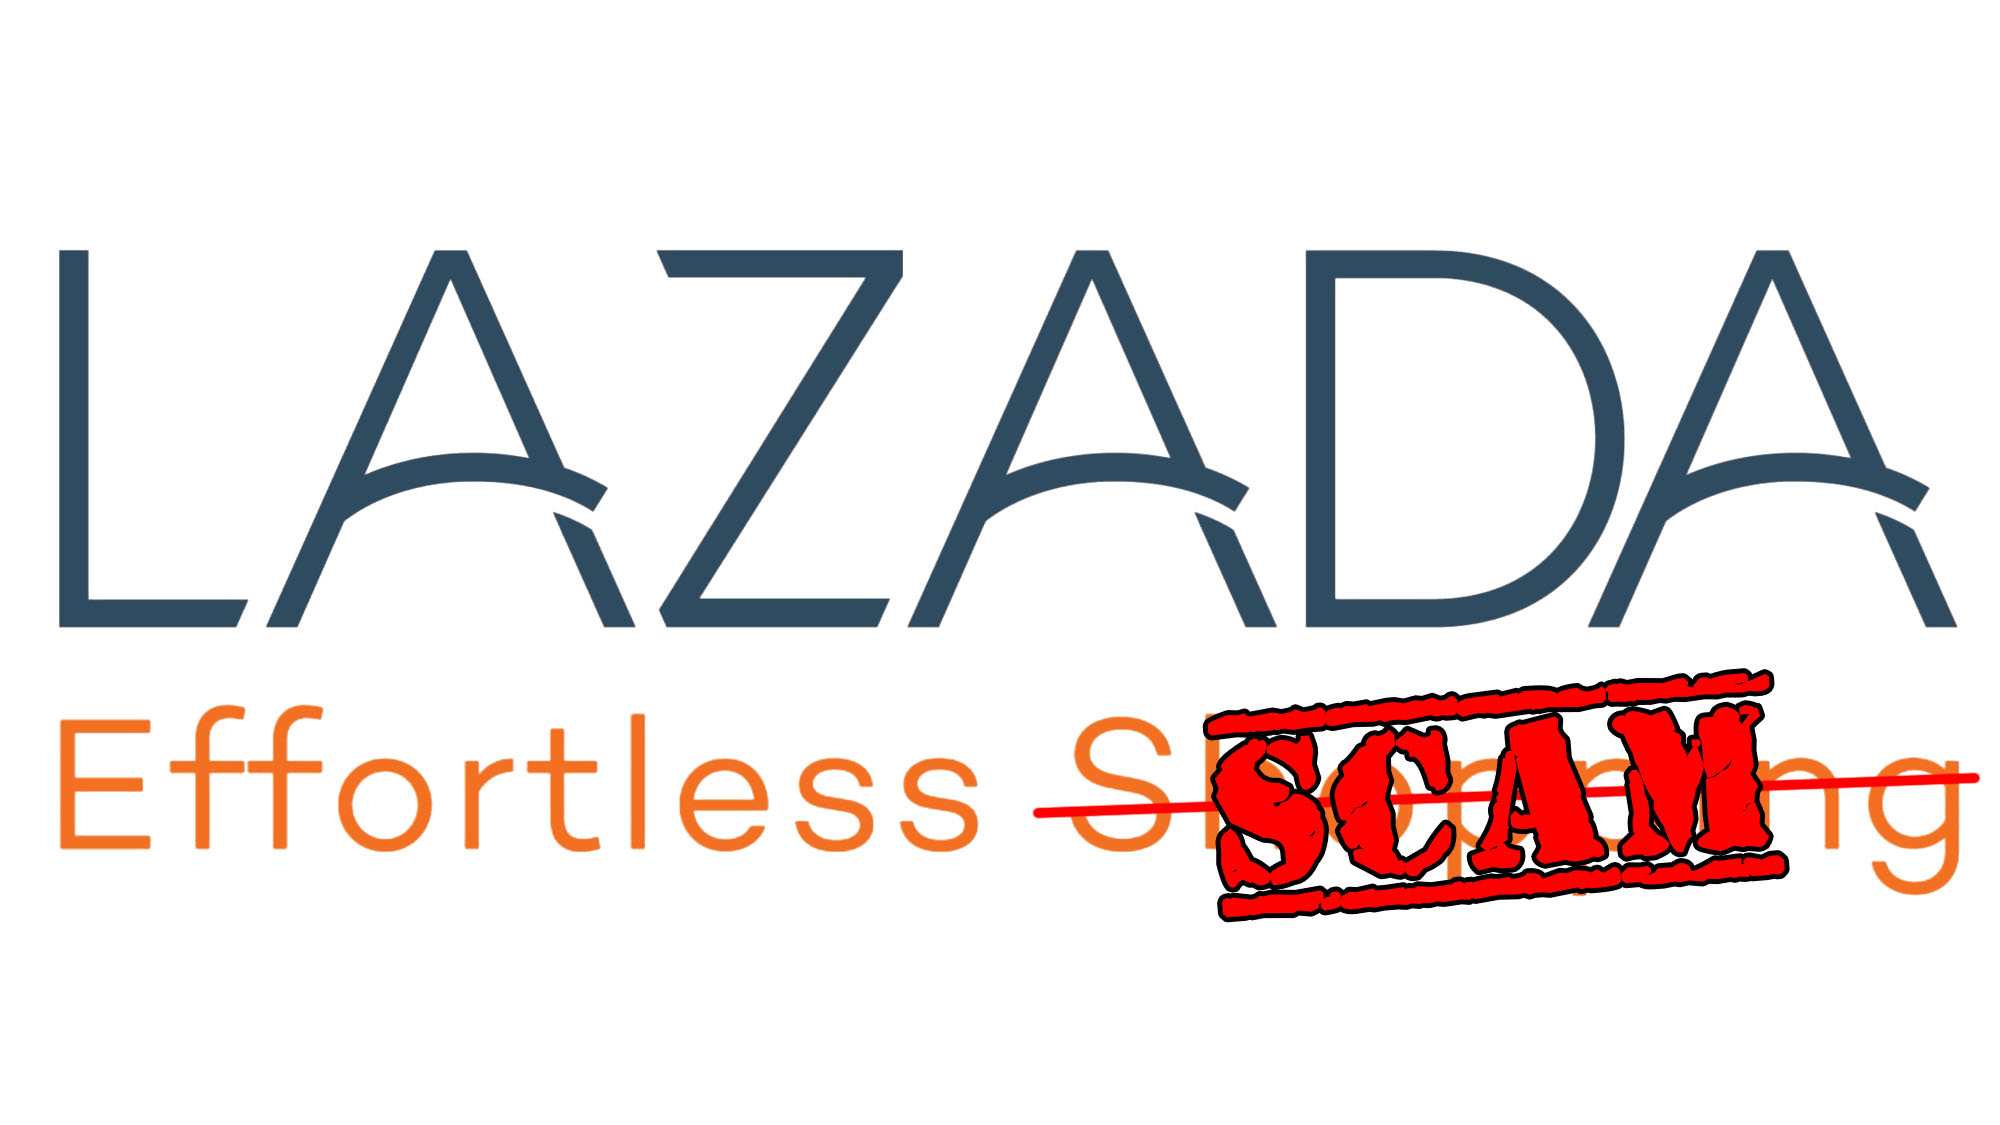 PSA] Lazada Scam! Here's How To Avoid Them - UPDATED | Nasi Lemak Tech